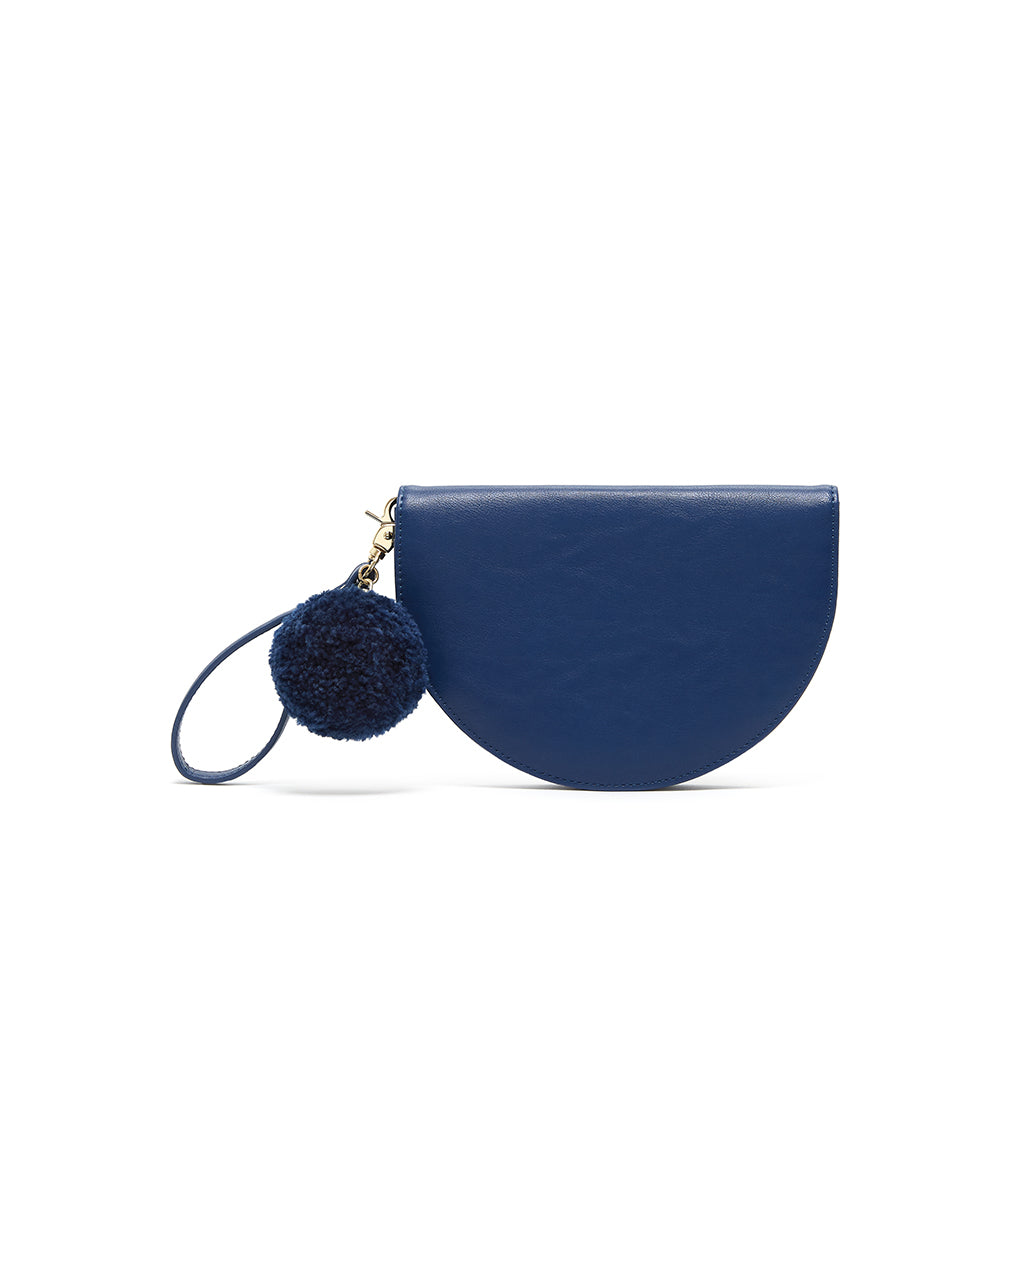 This Comrade Party Clutch comes in azure blue.